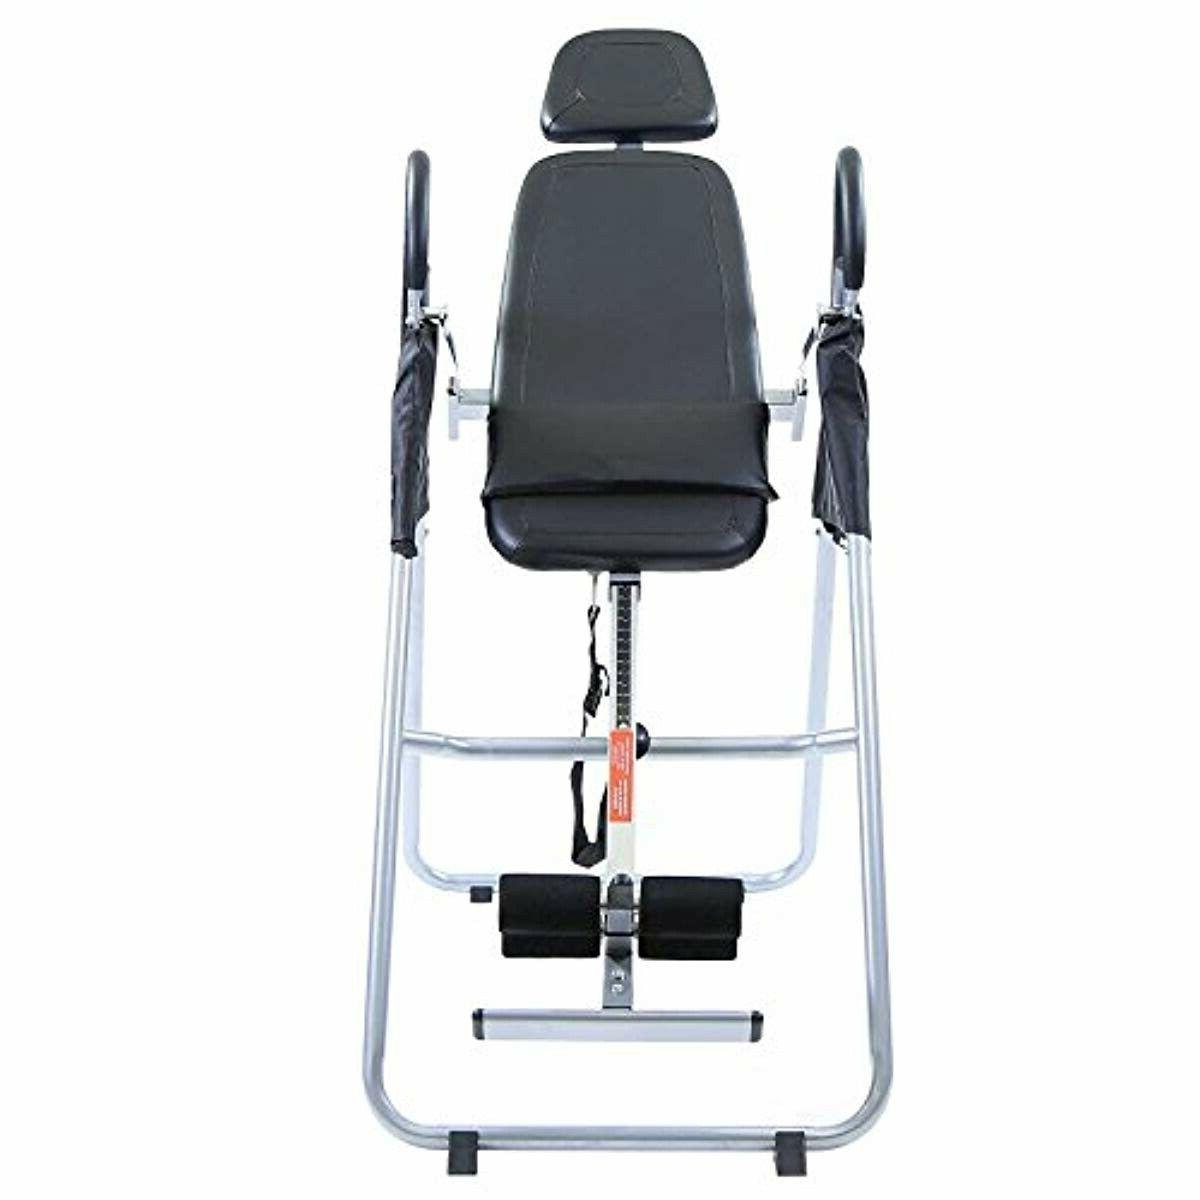 Invertio Table Stretcher for Relief Therapy New